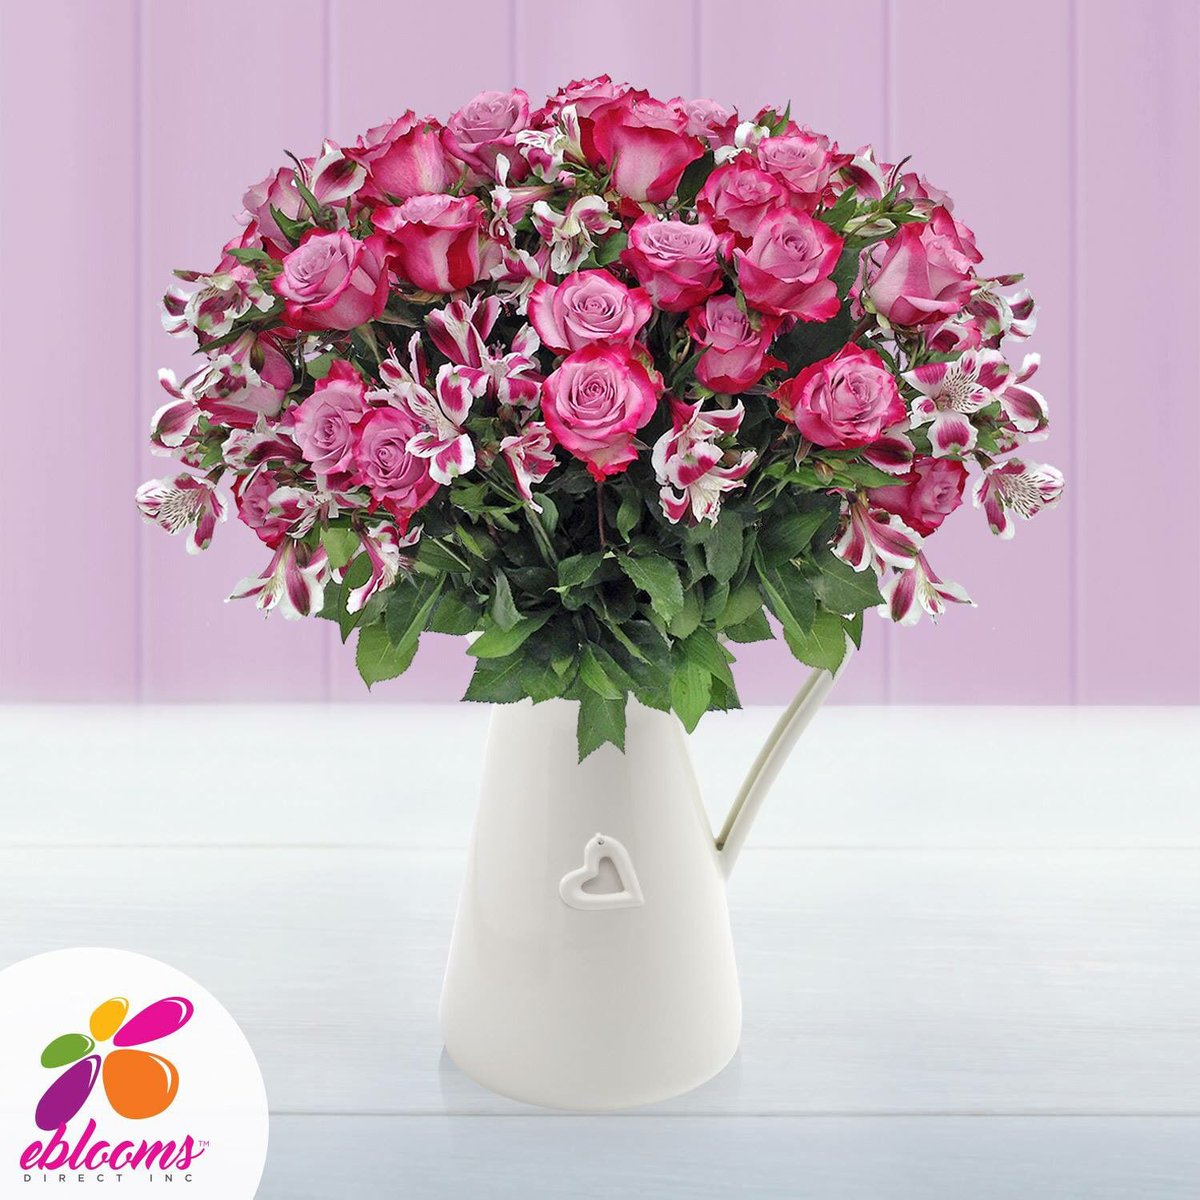 Only by Eblooms Direct! Please Visit Us at: https://goo.gl/UpruXR #roses #springtime #love #usa #alstroemerias #kiss #freshflowers #bouquet #floral #engaged ...